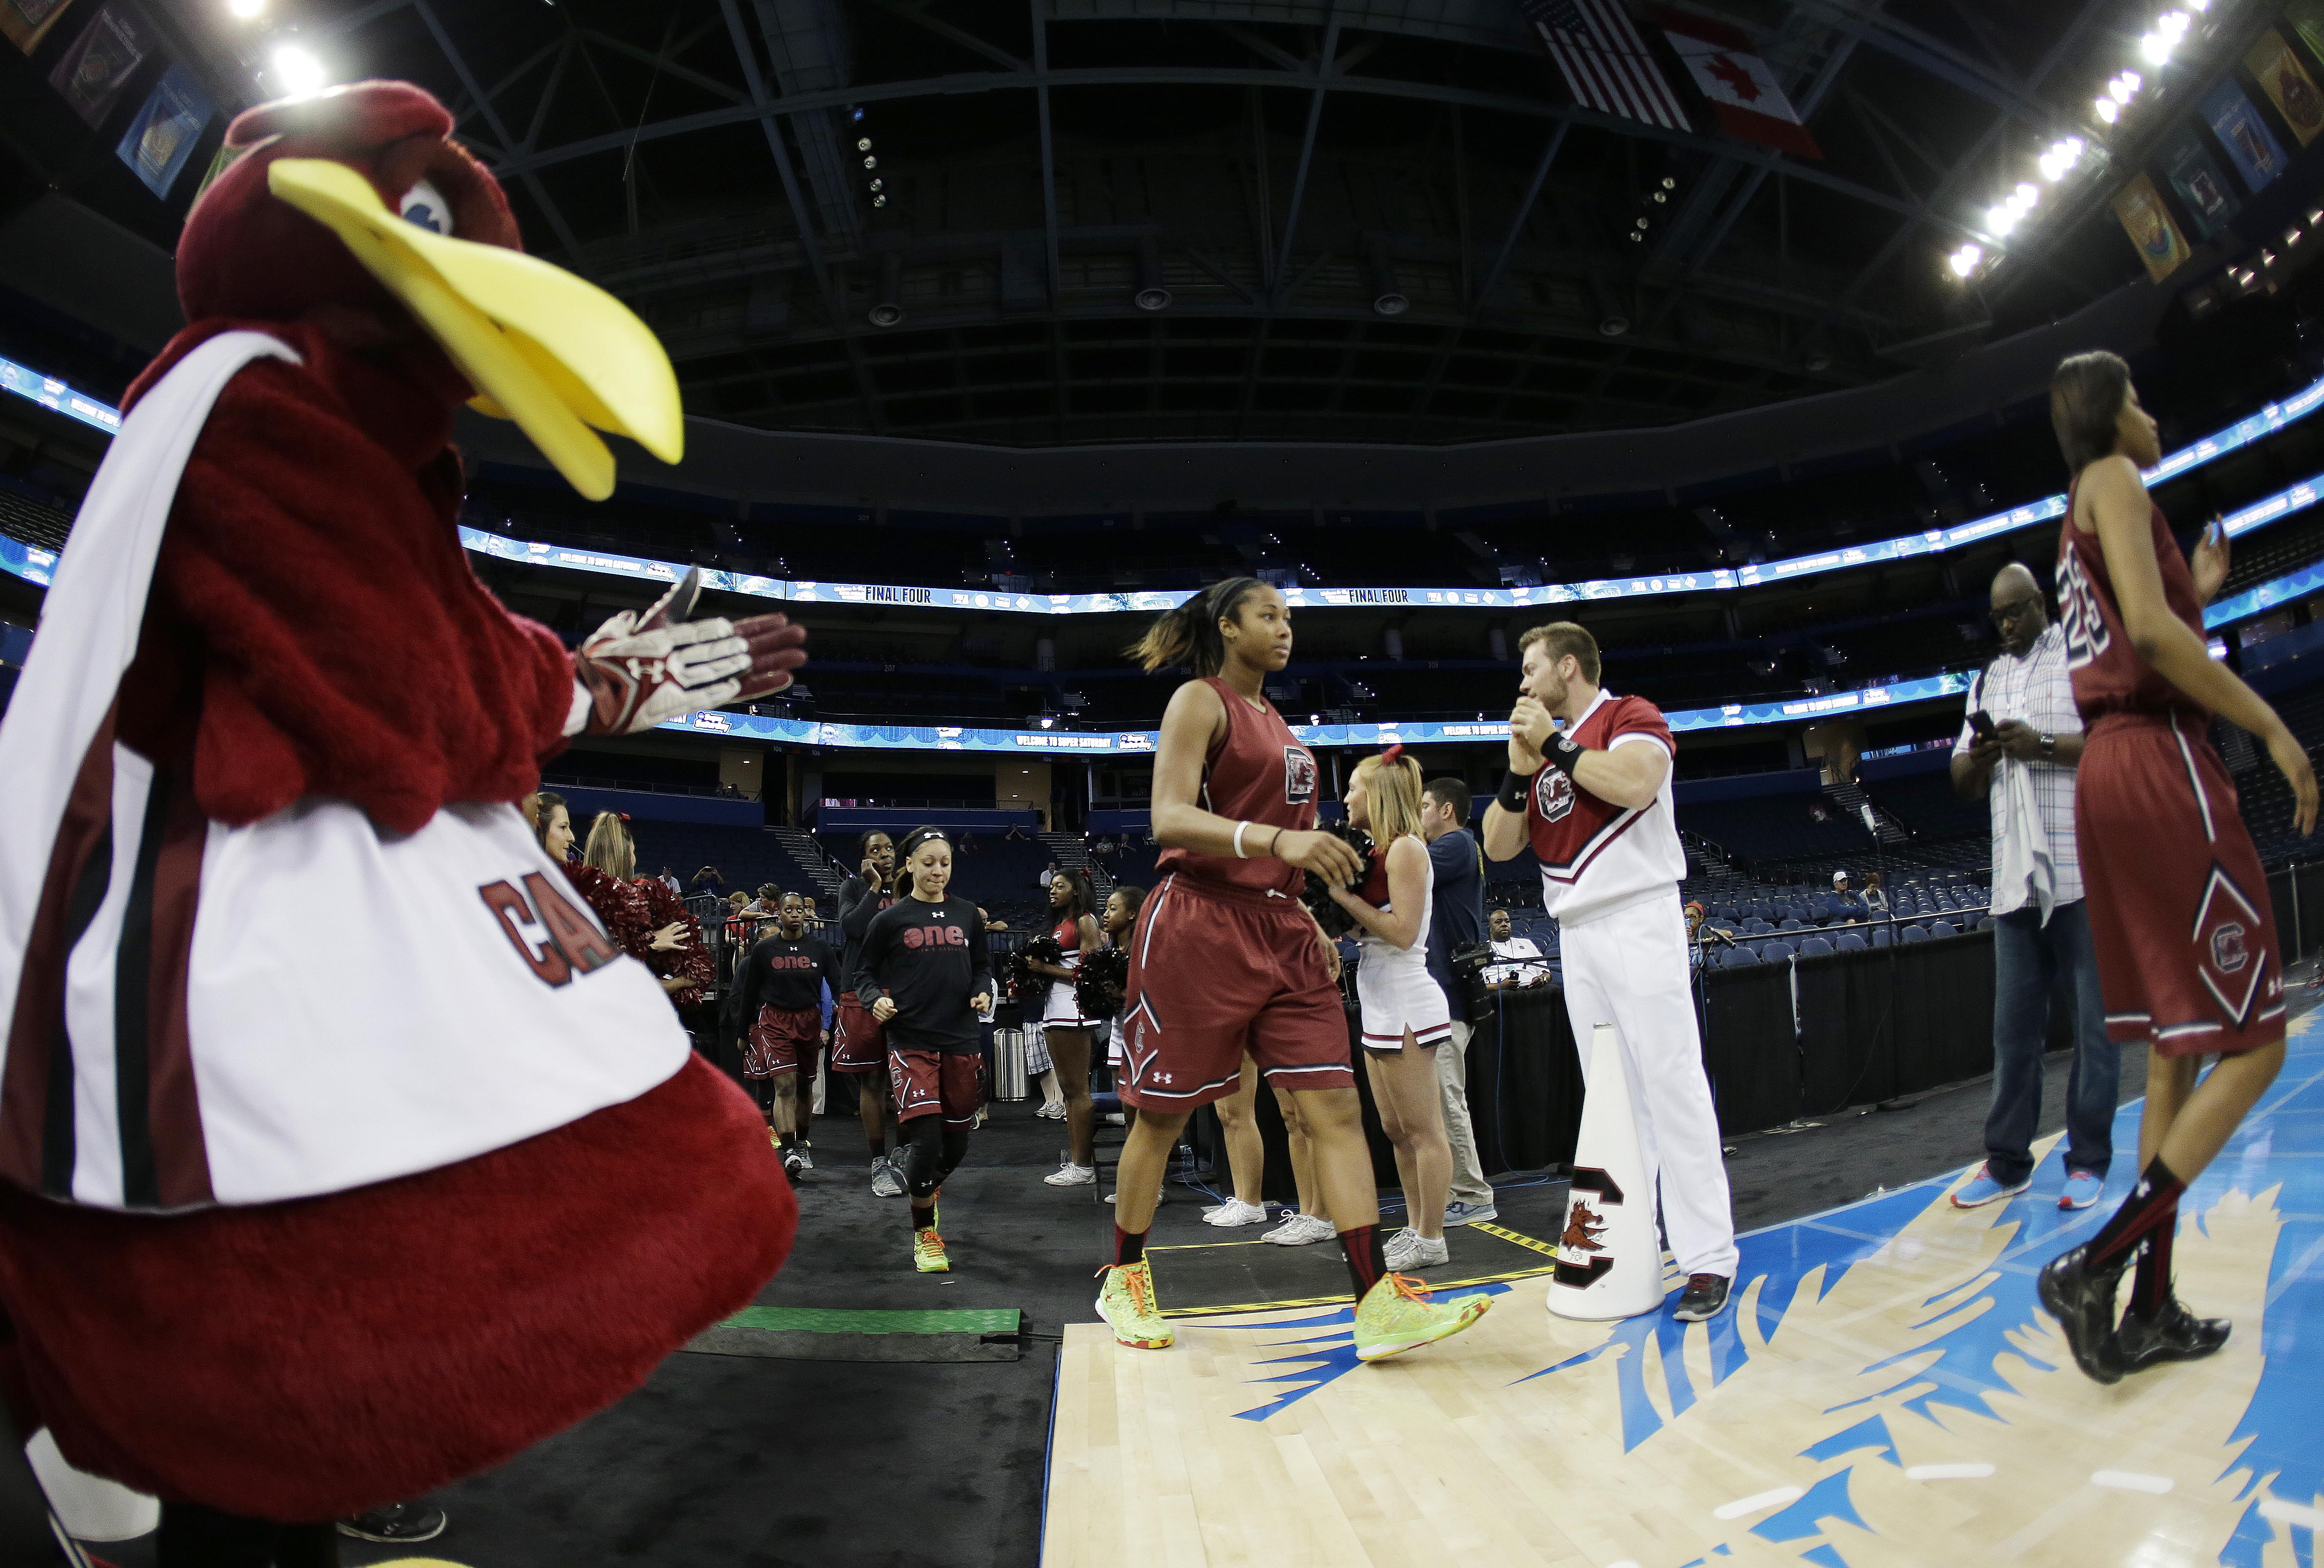 South Carolina players take the floor before a practice session for the NCAA Final Four tournament women's college basketball semifinal game, Saturday, April 4, 2015, in Tampa, Fla. South Carolina plays Notre Dame Saturday in a semifinal game. (AP Photo/C